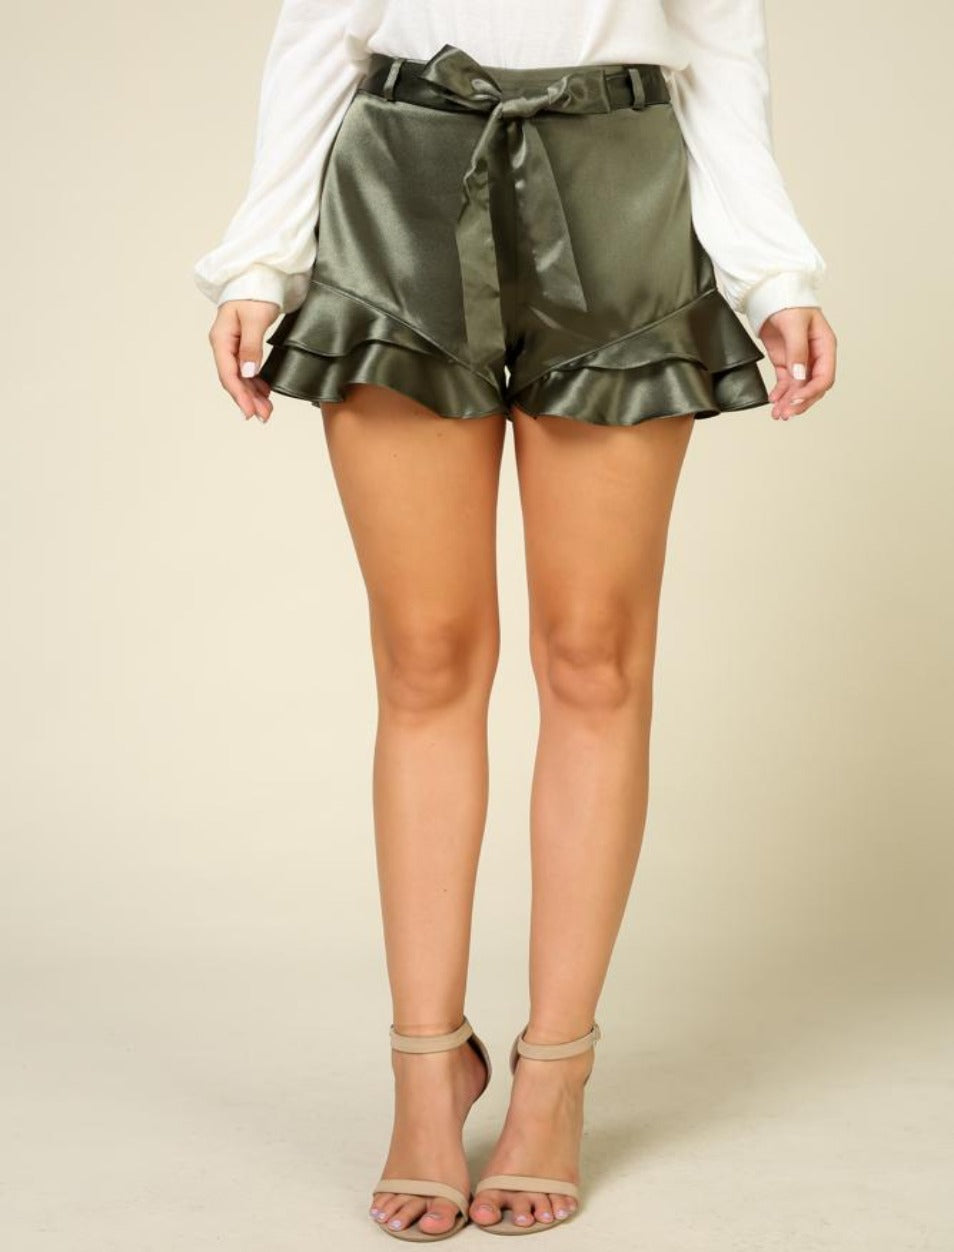 Darby So Flossy high waist olive/green satin ruffle hem shorts with self tie - Sahvant